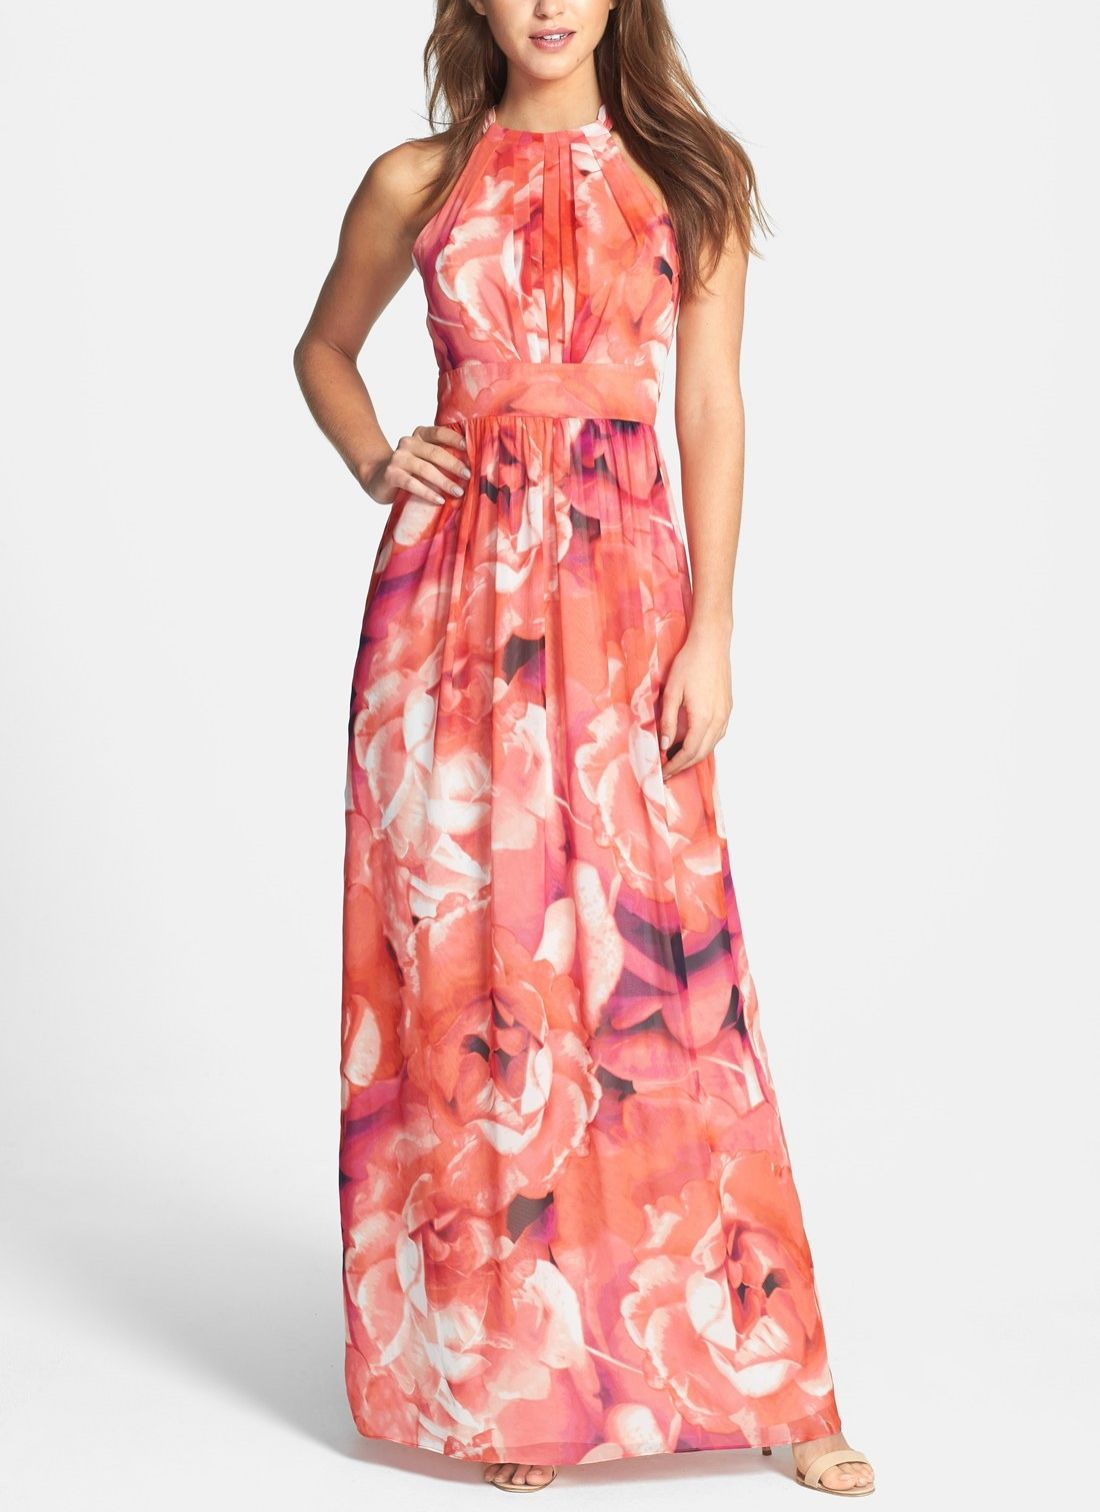 This pink floral print chiffon maxi dress is perfect for spring ...